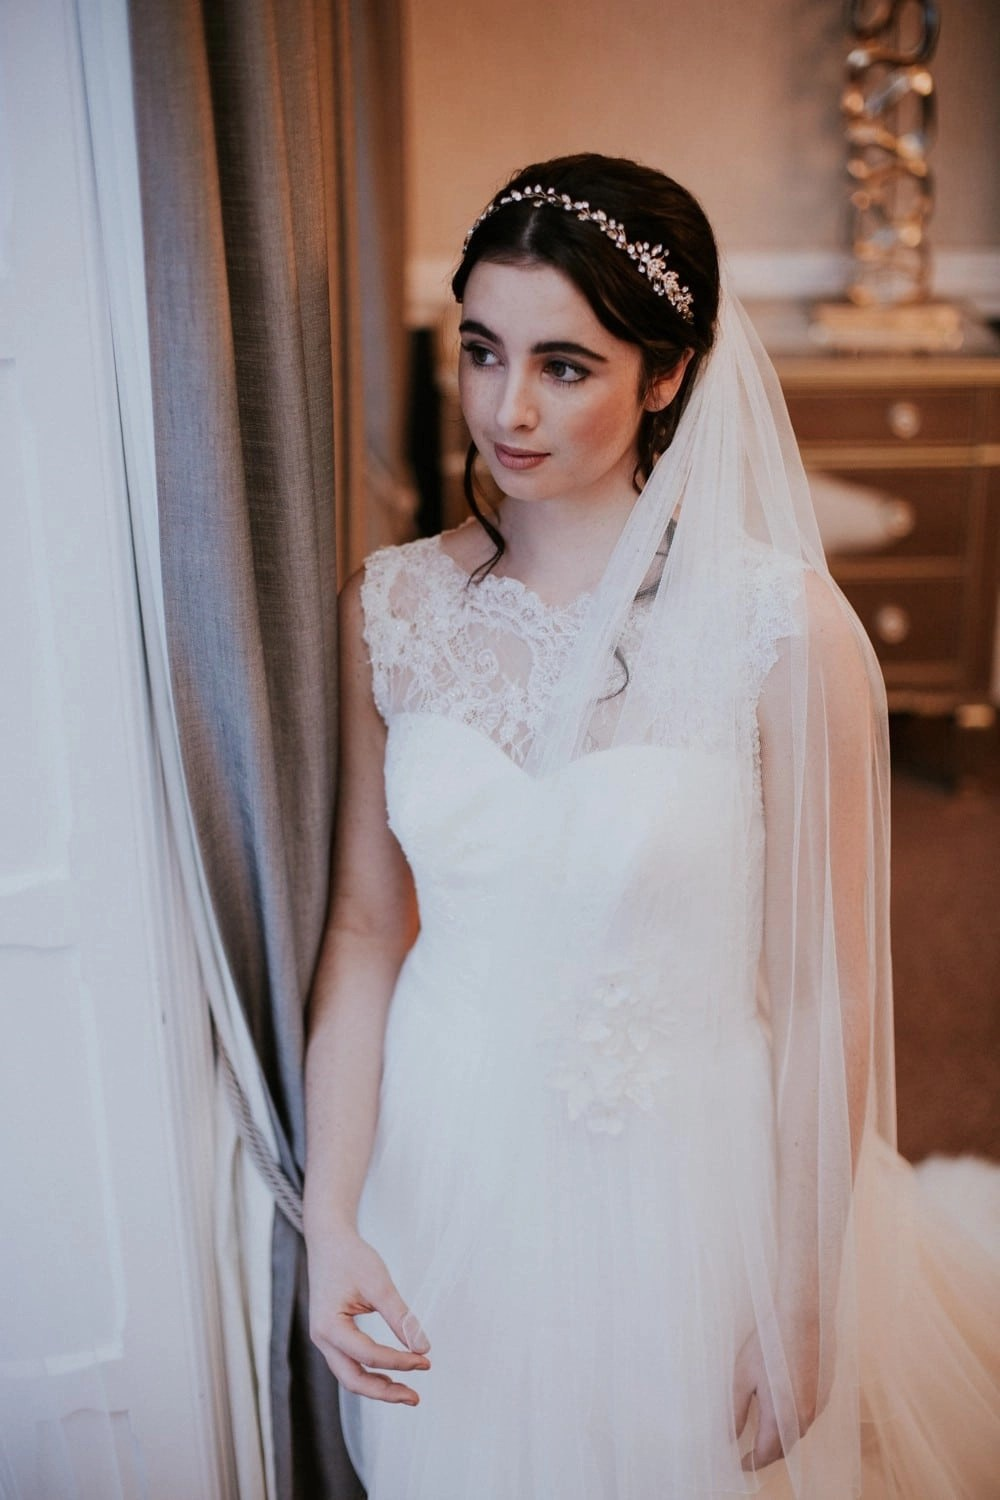 Bride wearing a simple plain wedding veil in fingertip length